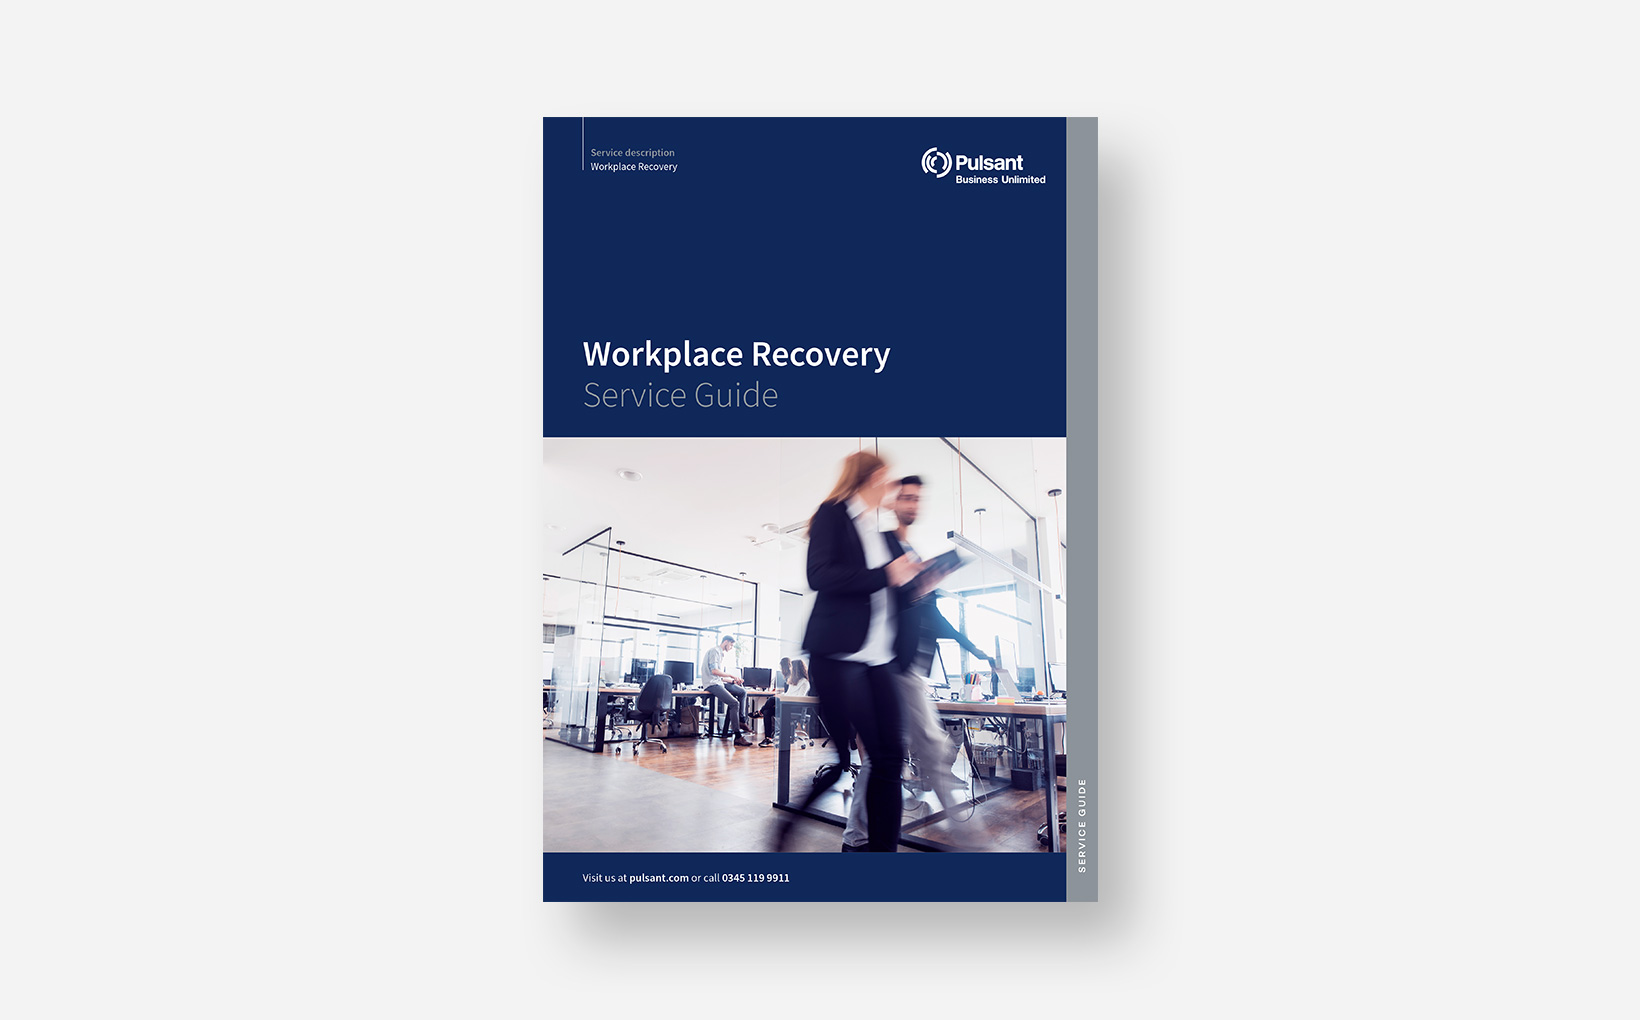 Everything you need to know about our workplace recovery service